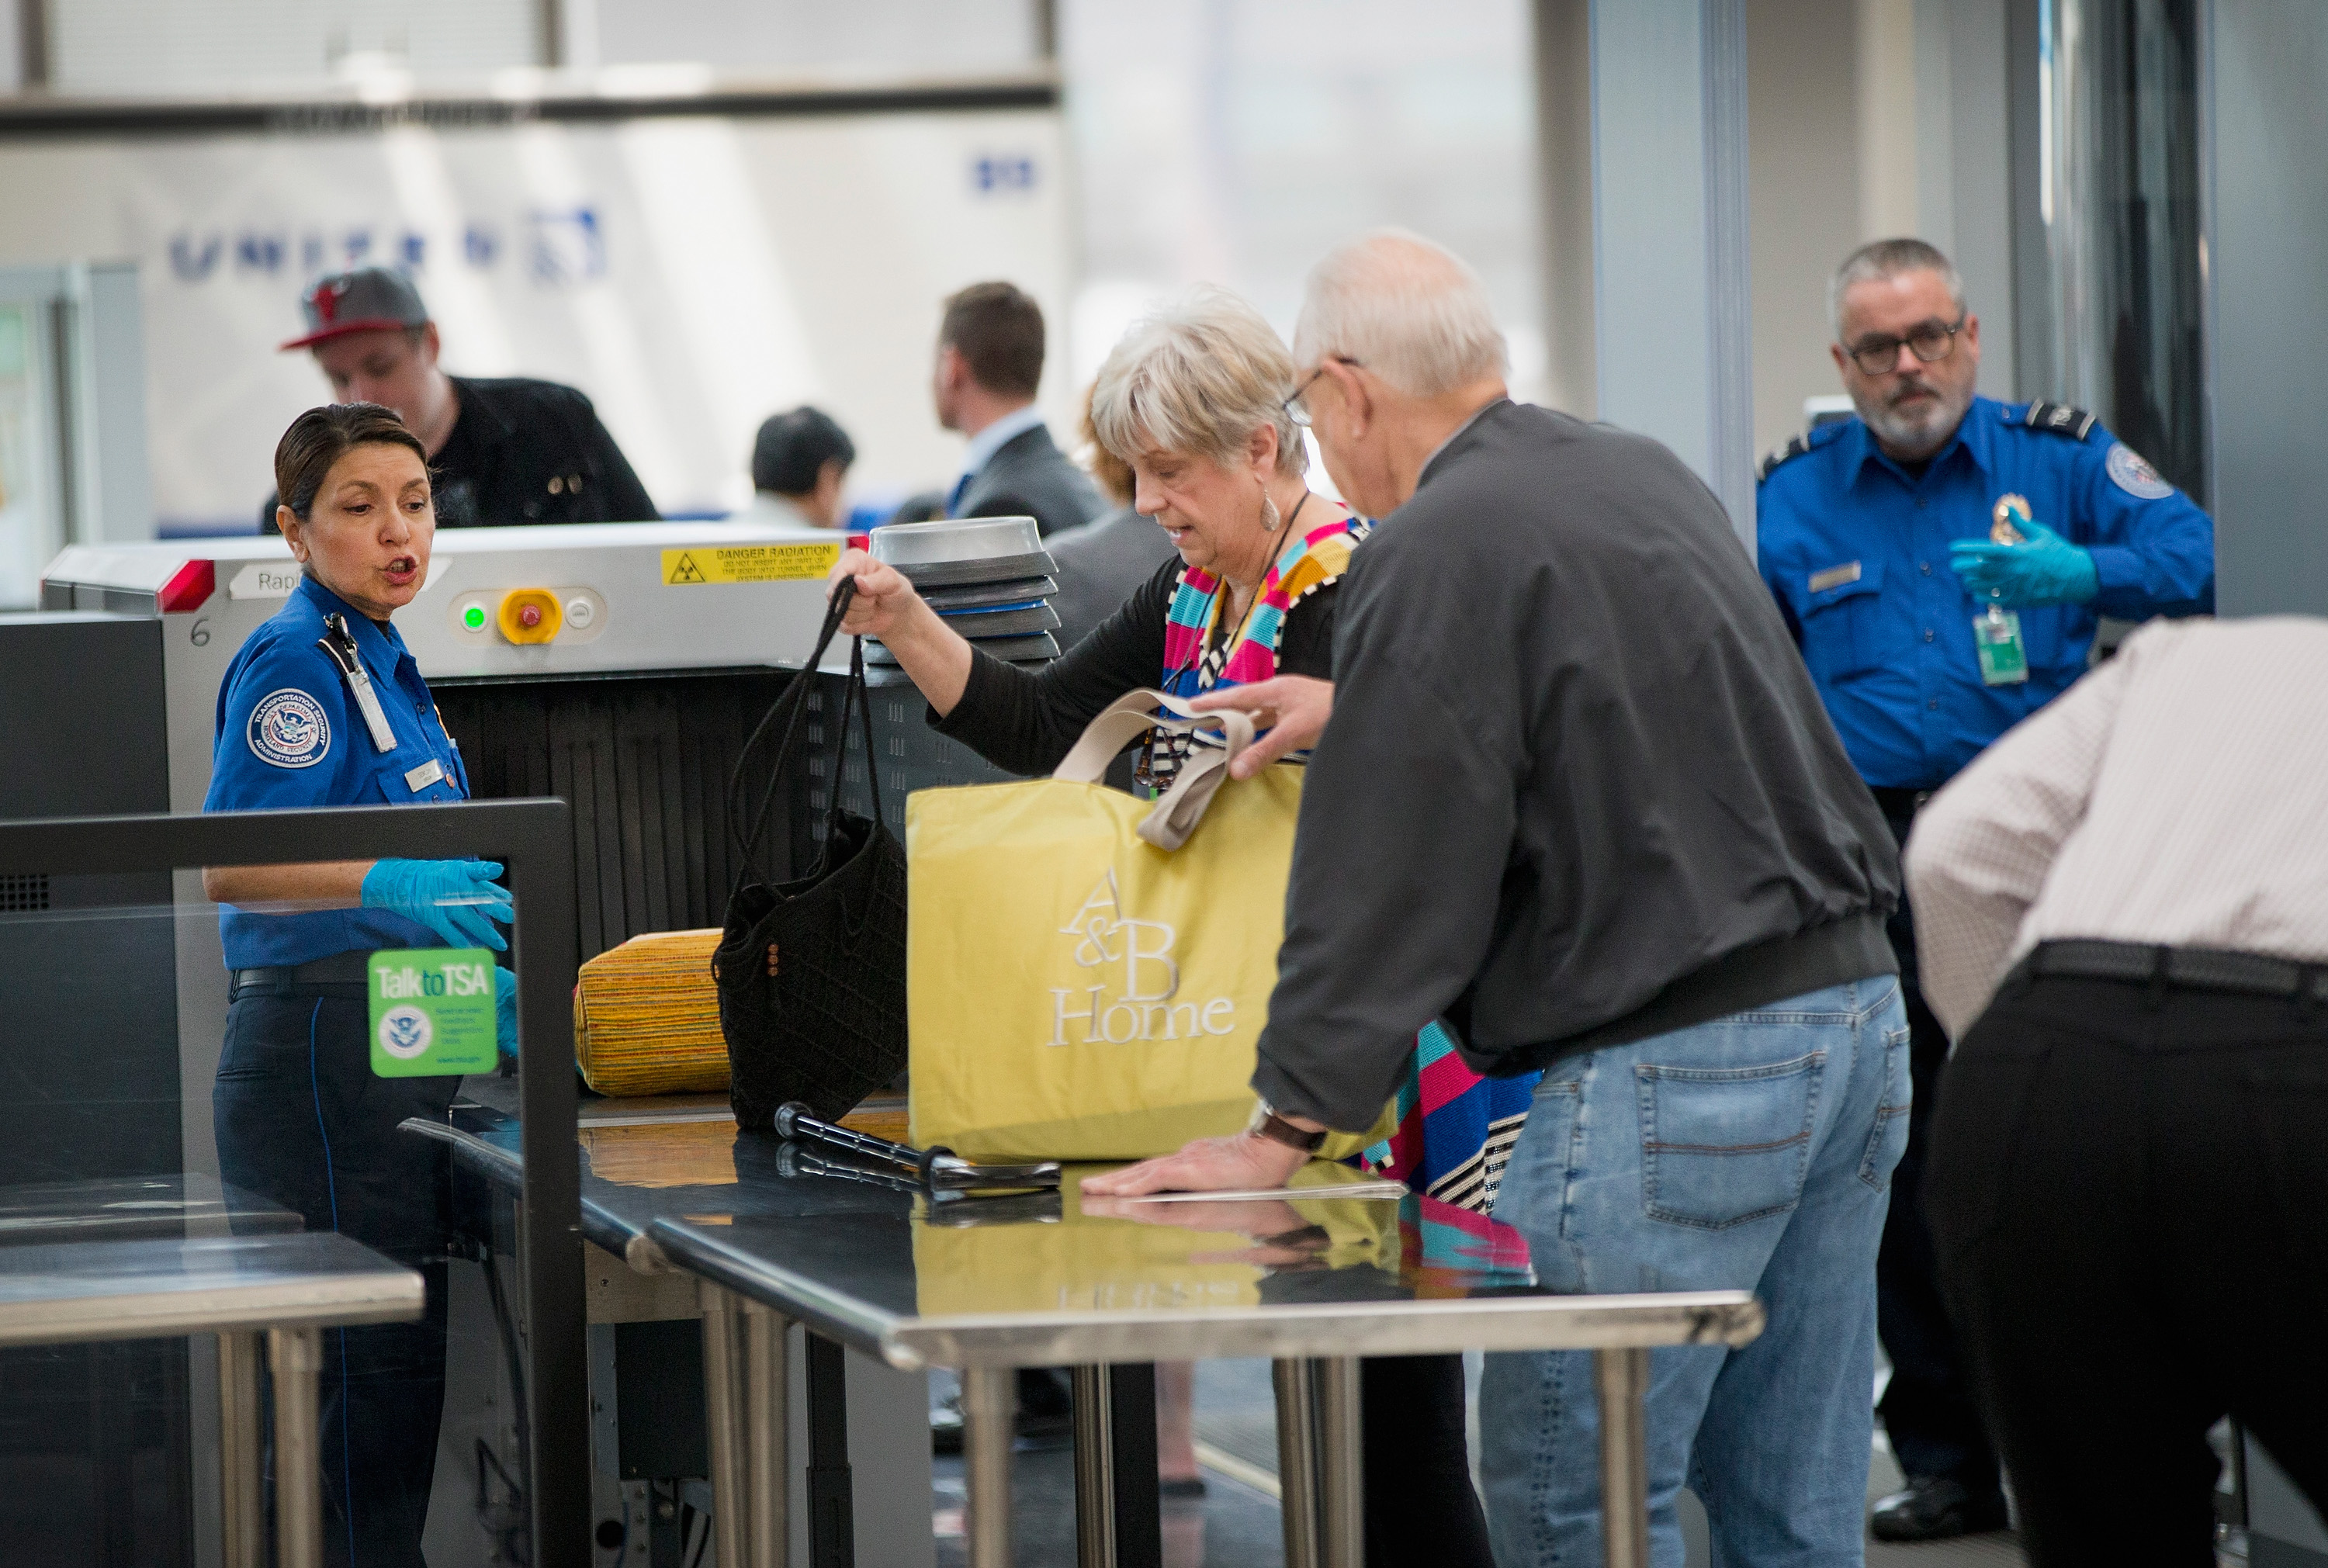 The TSA is a waste of money that doesn't save lives and might actually cost them